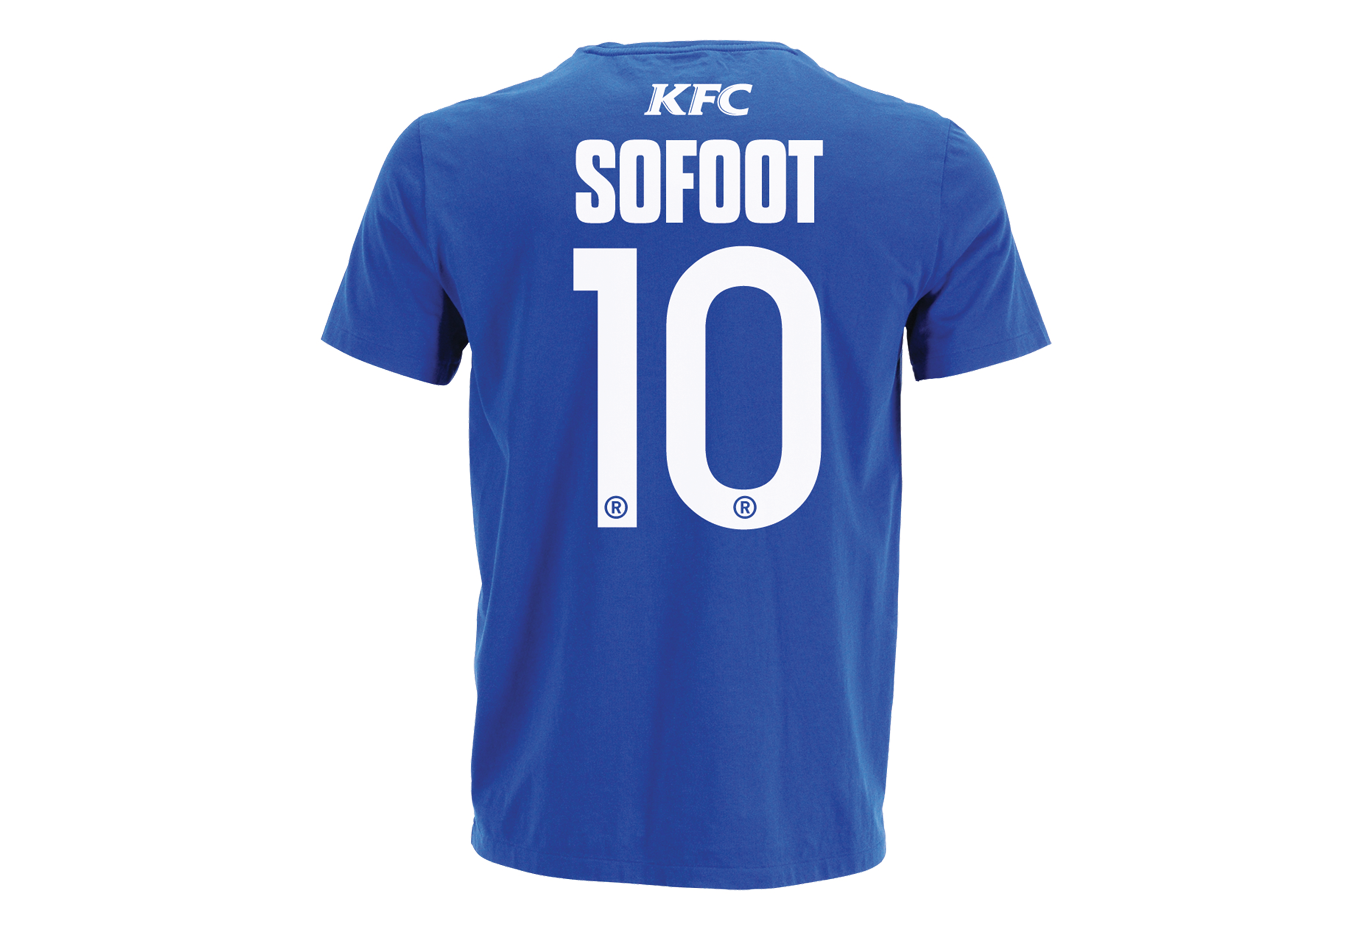 kfc-sofoot-so-foot-dos-bleu